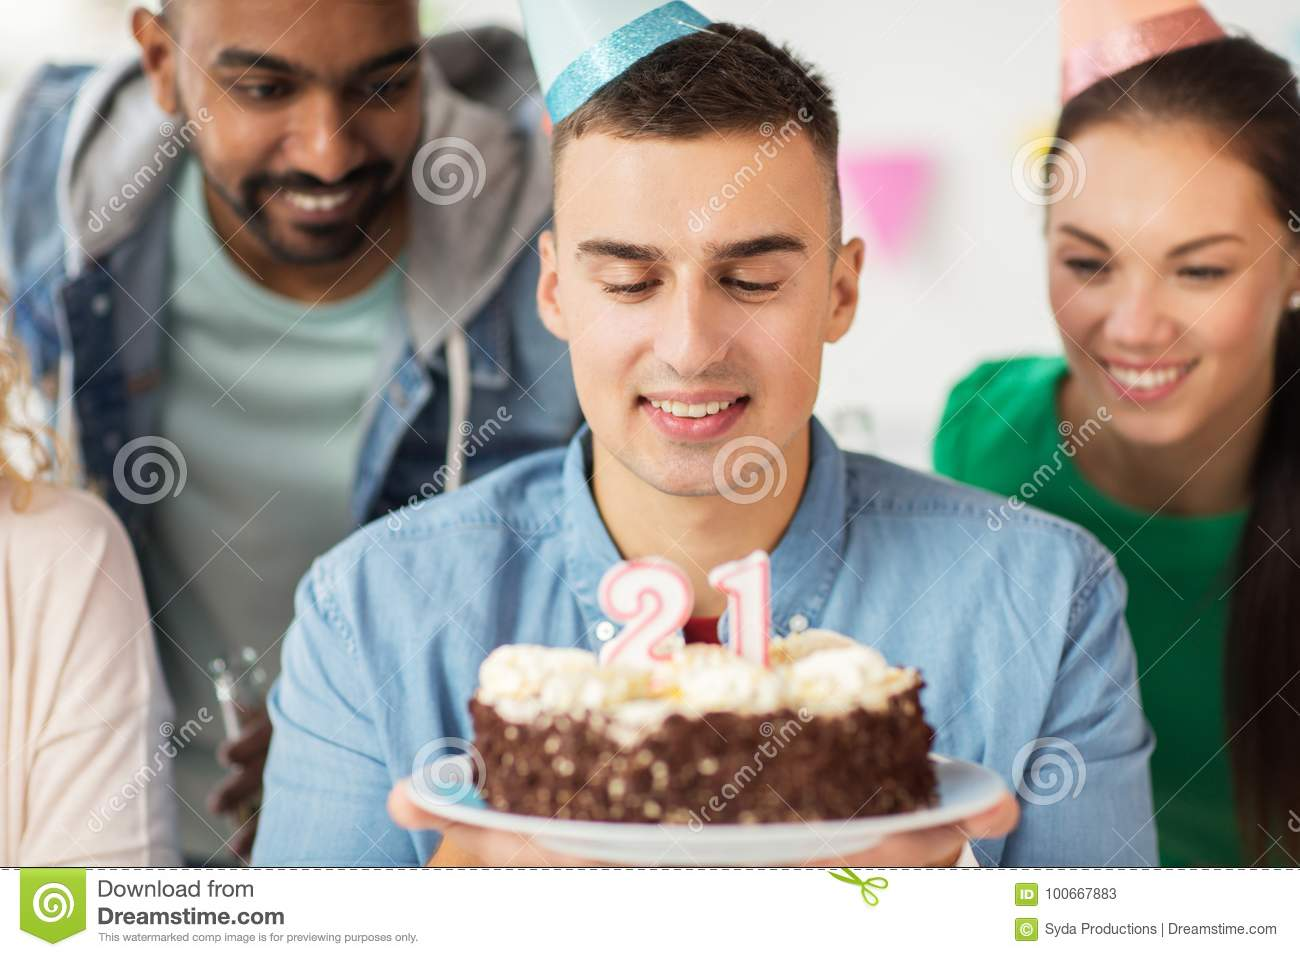 Pleasing Man With Birthday Cake And Team At Office Party Stock Image Funny Birthday Cards Online Inifofree Goldxyz